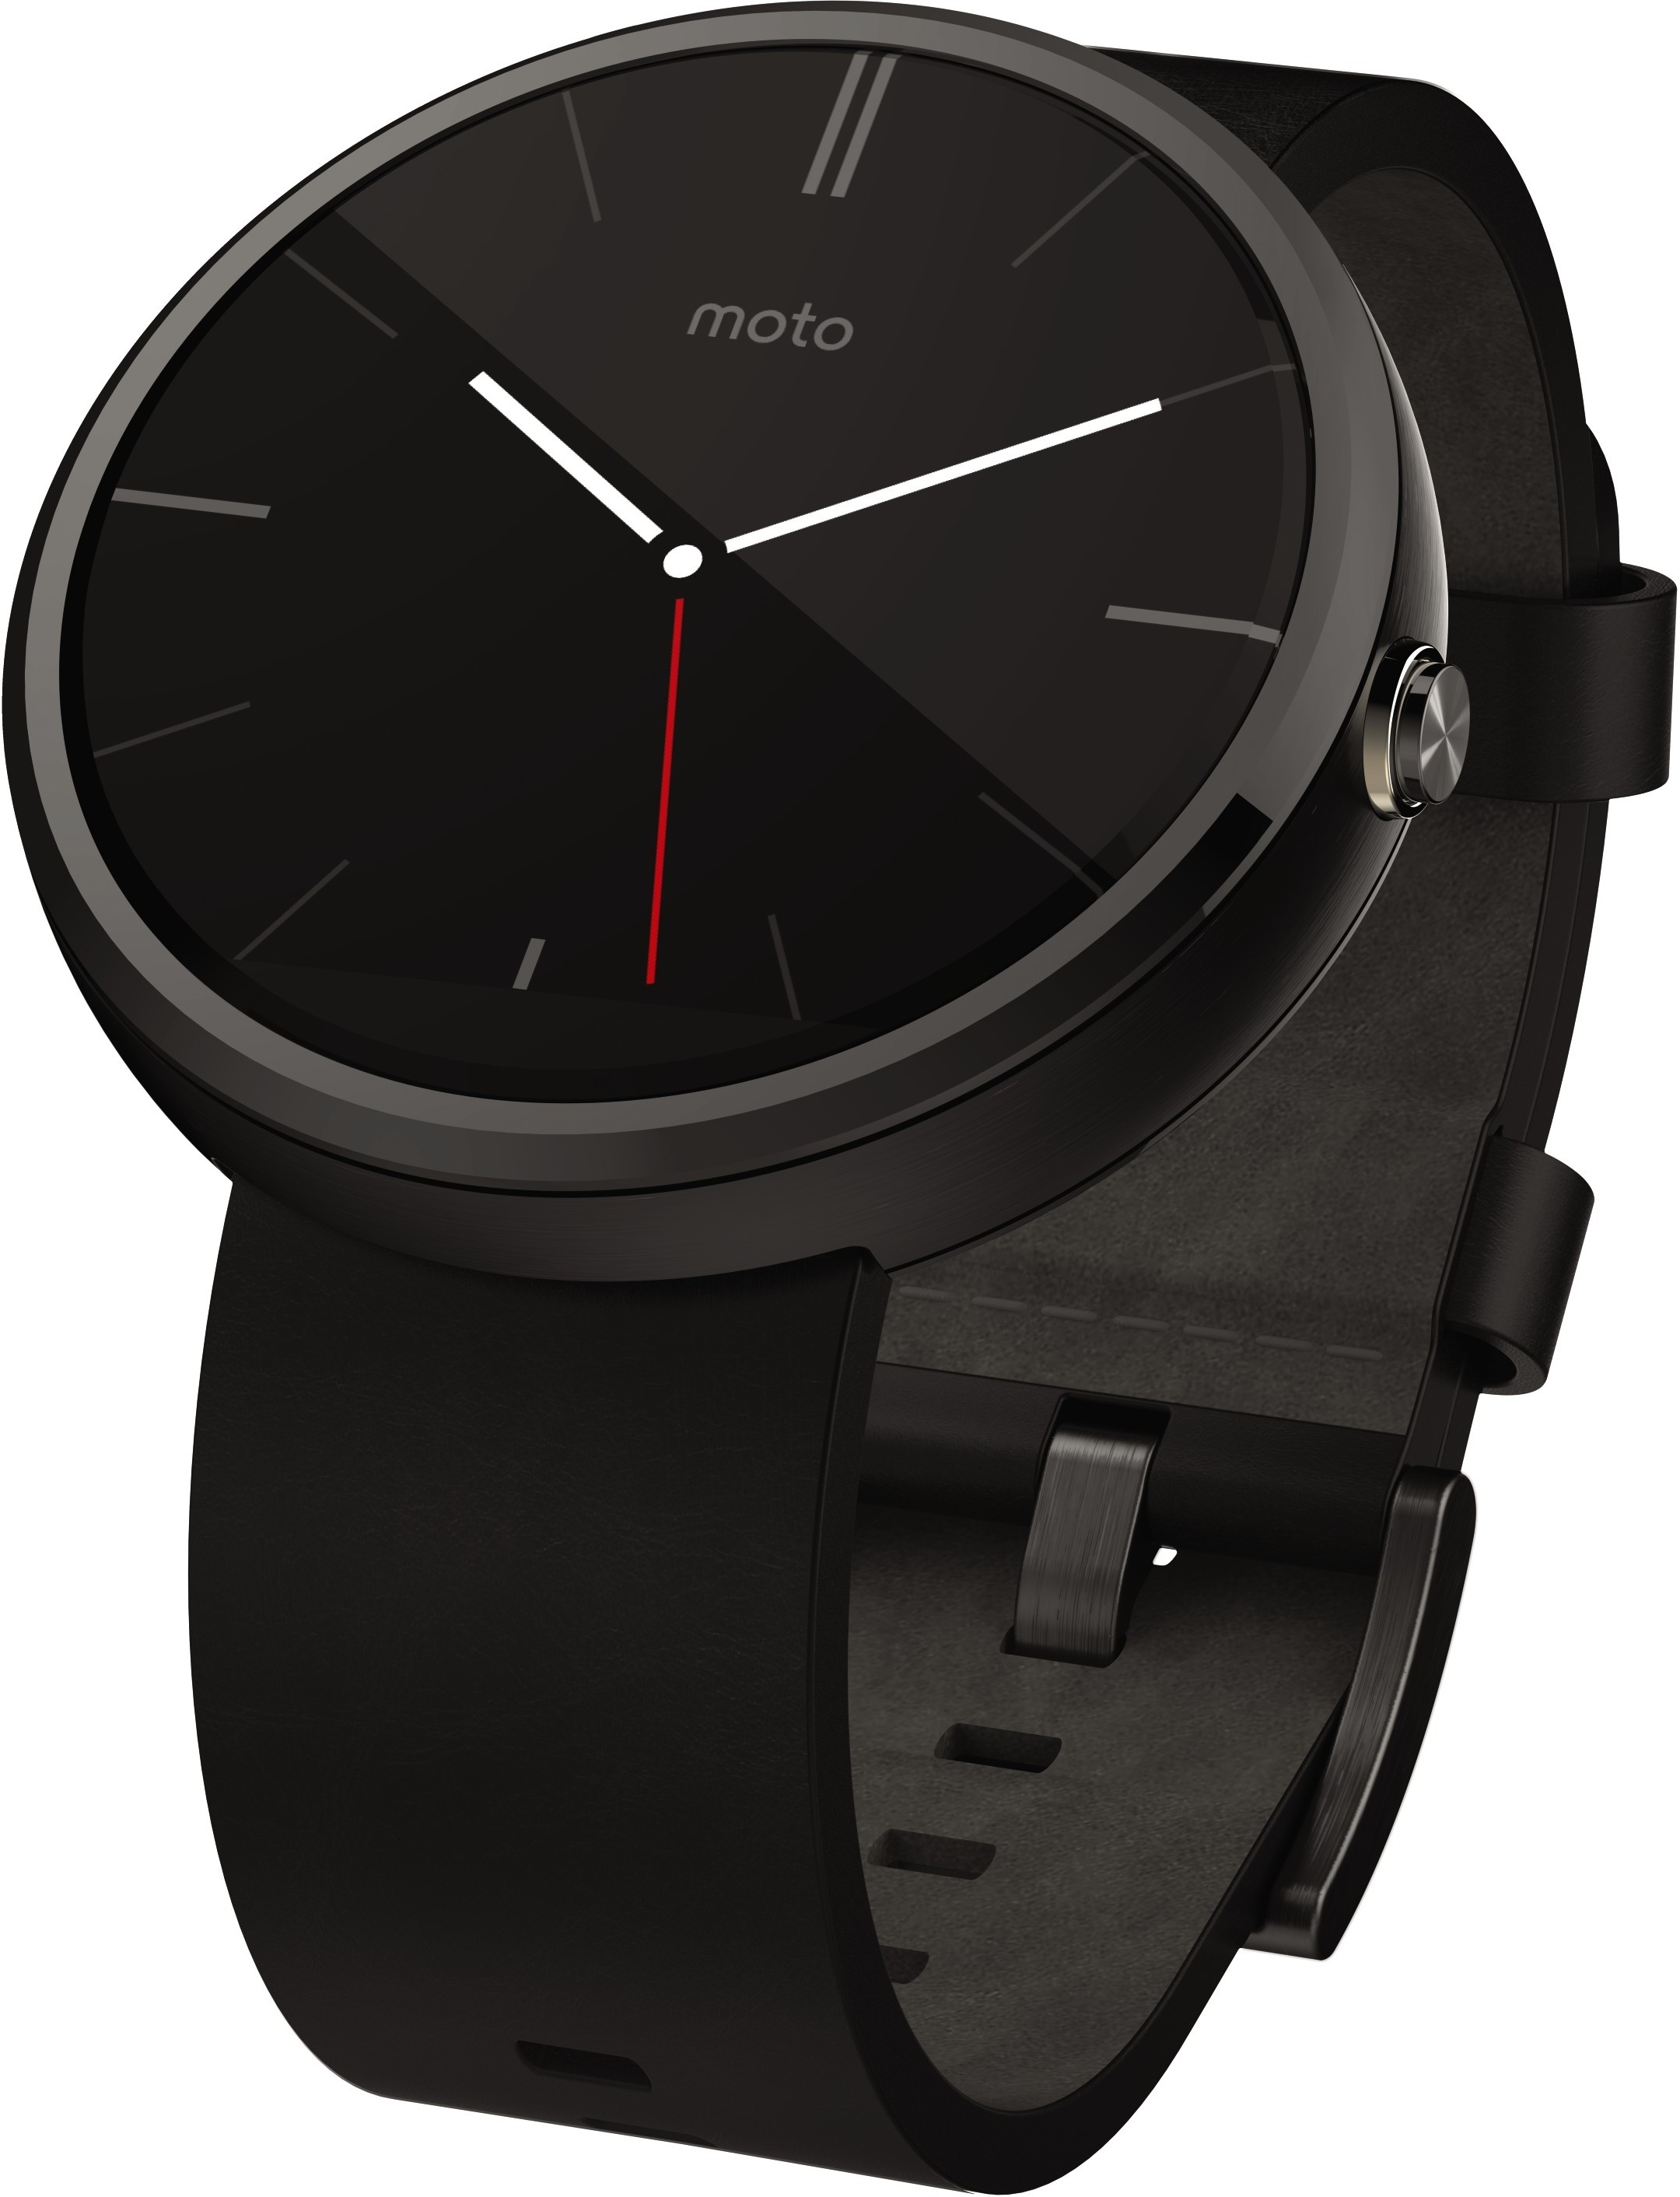 Duty: motorola moto 360 smartwatch price in india many messages